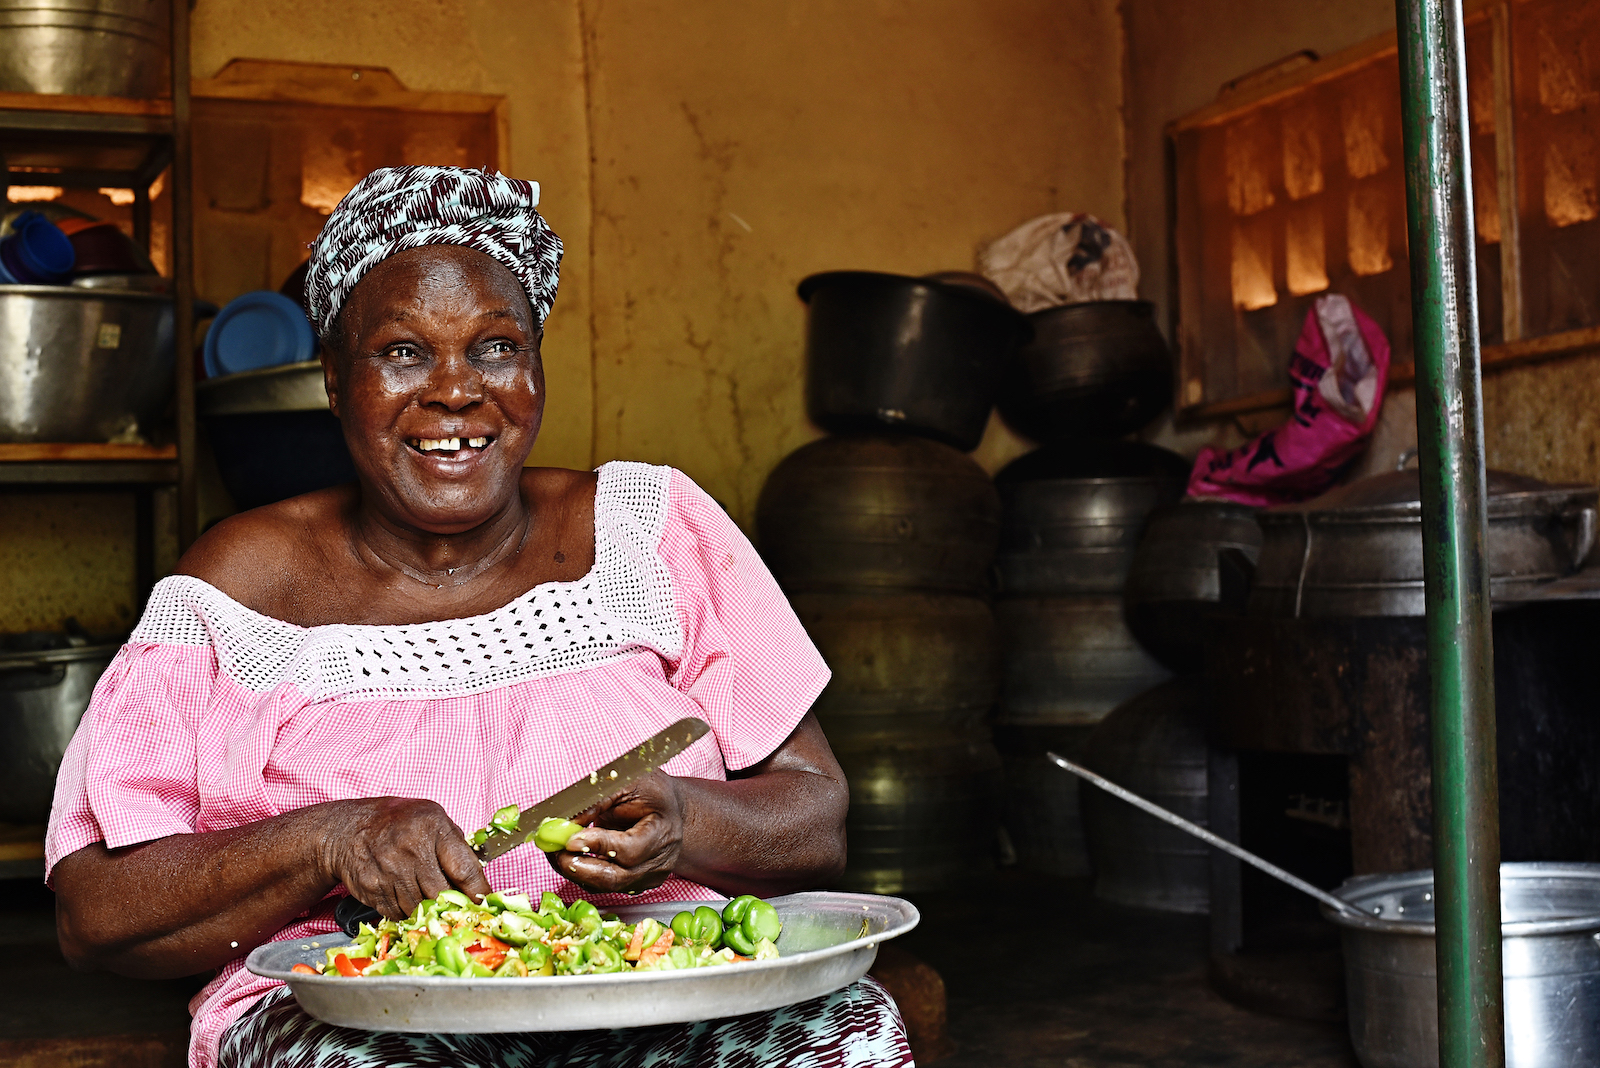 A woman sits in a kitchen cutting vegetables